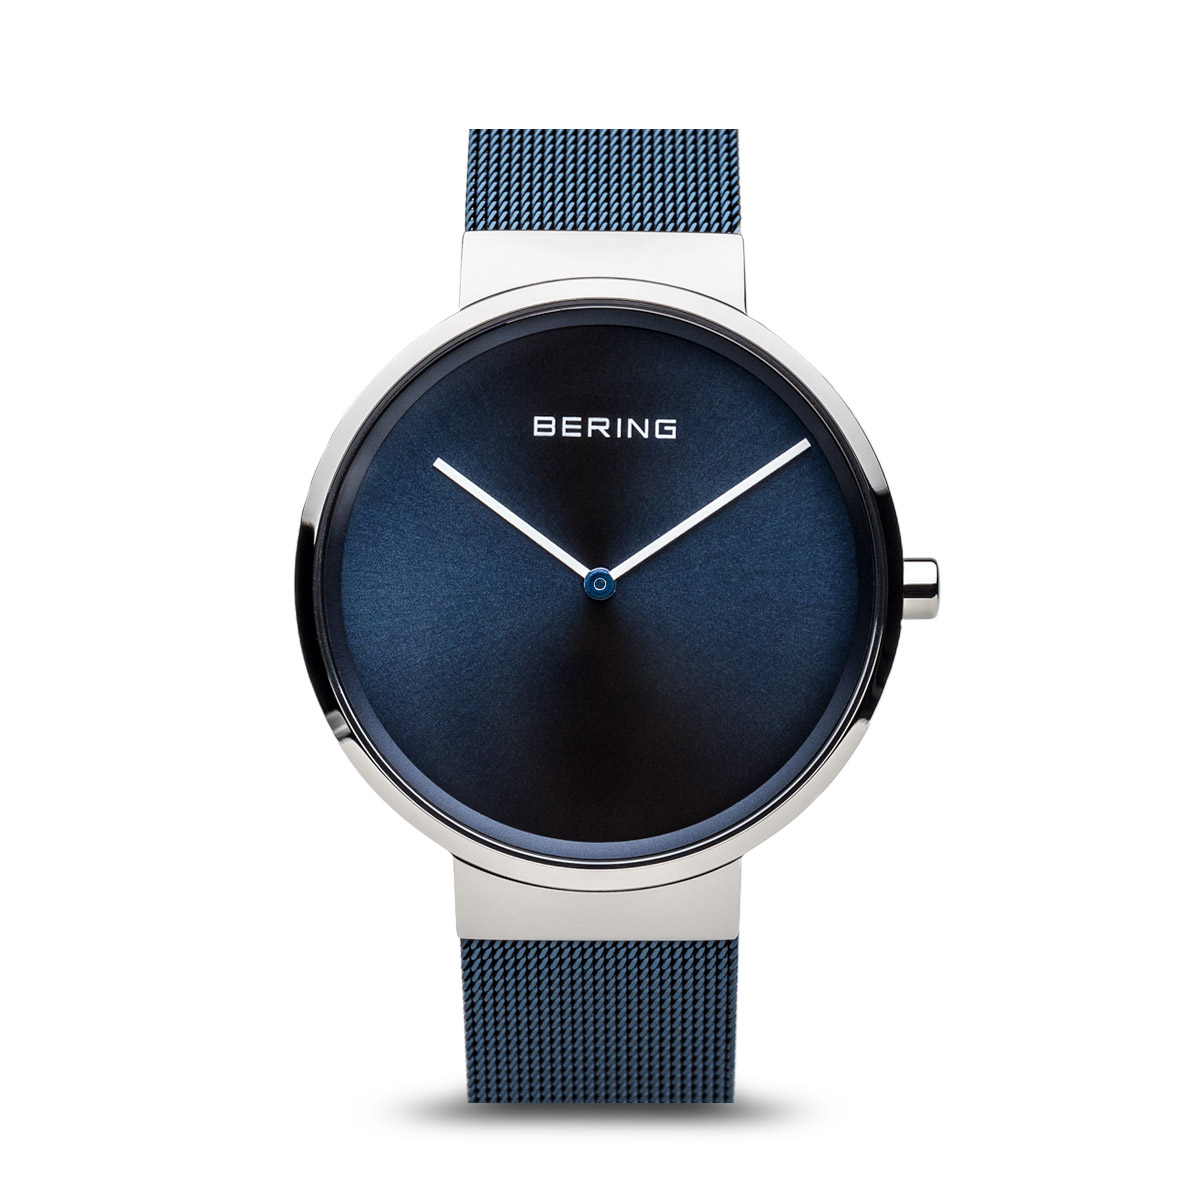 HERREN  UHREN  BERING   Official Website  DE Store